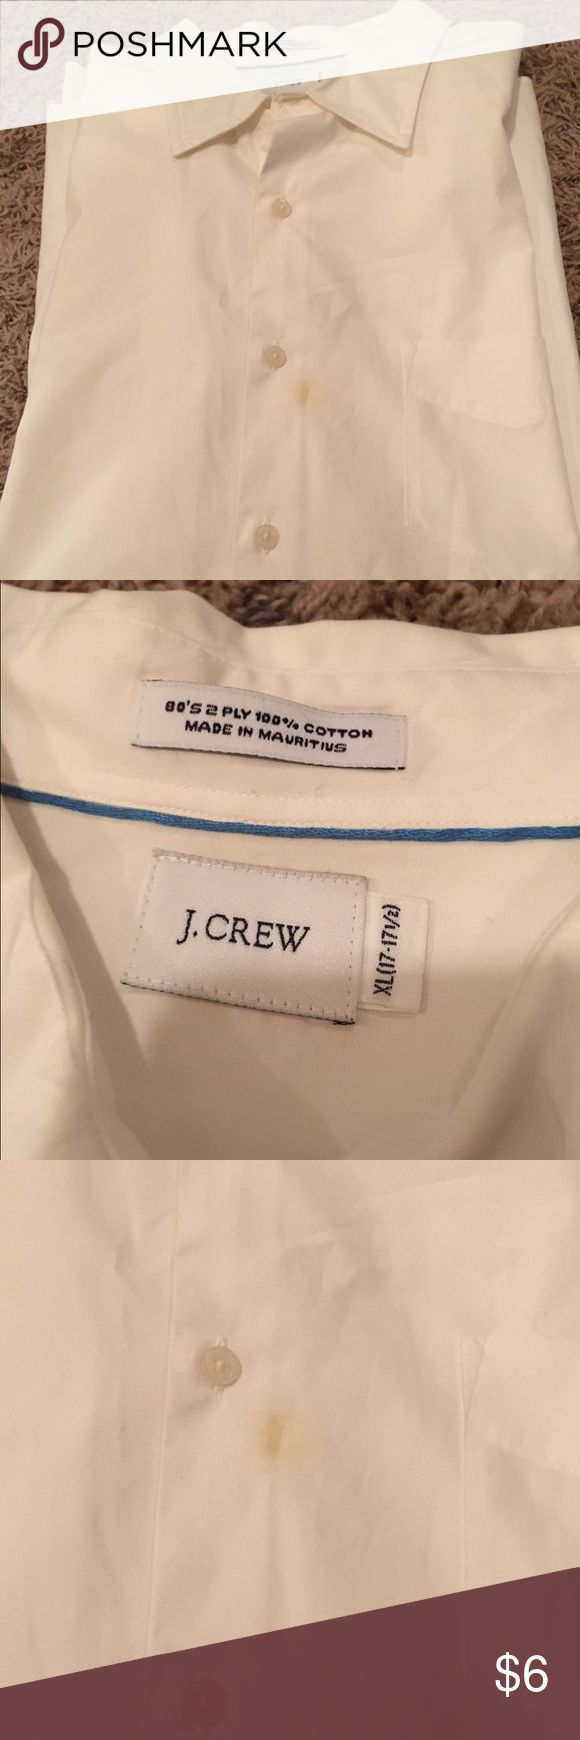 Men's J Crew White Short Sleeve Dress Shirt Slight stain on the front I'm sure can come out. I just haven't had the time to try. j crew Shirts Dress Shirts